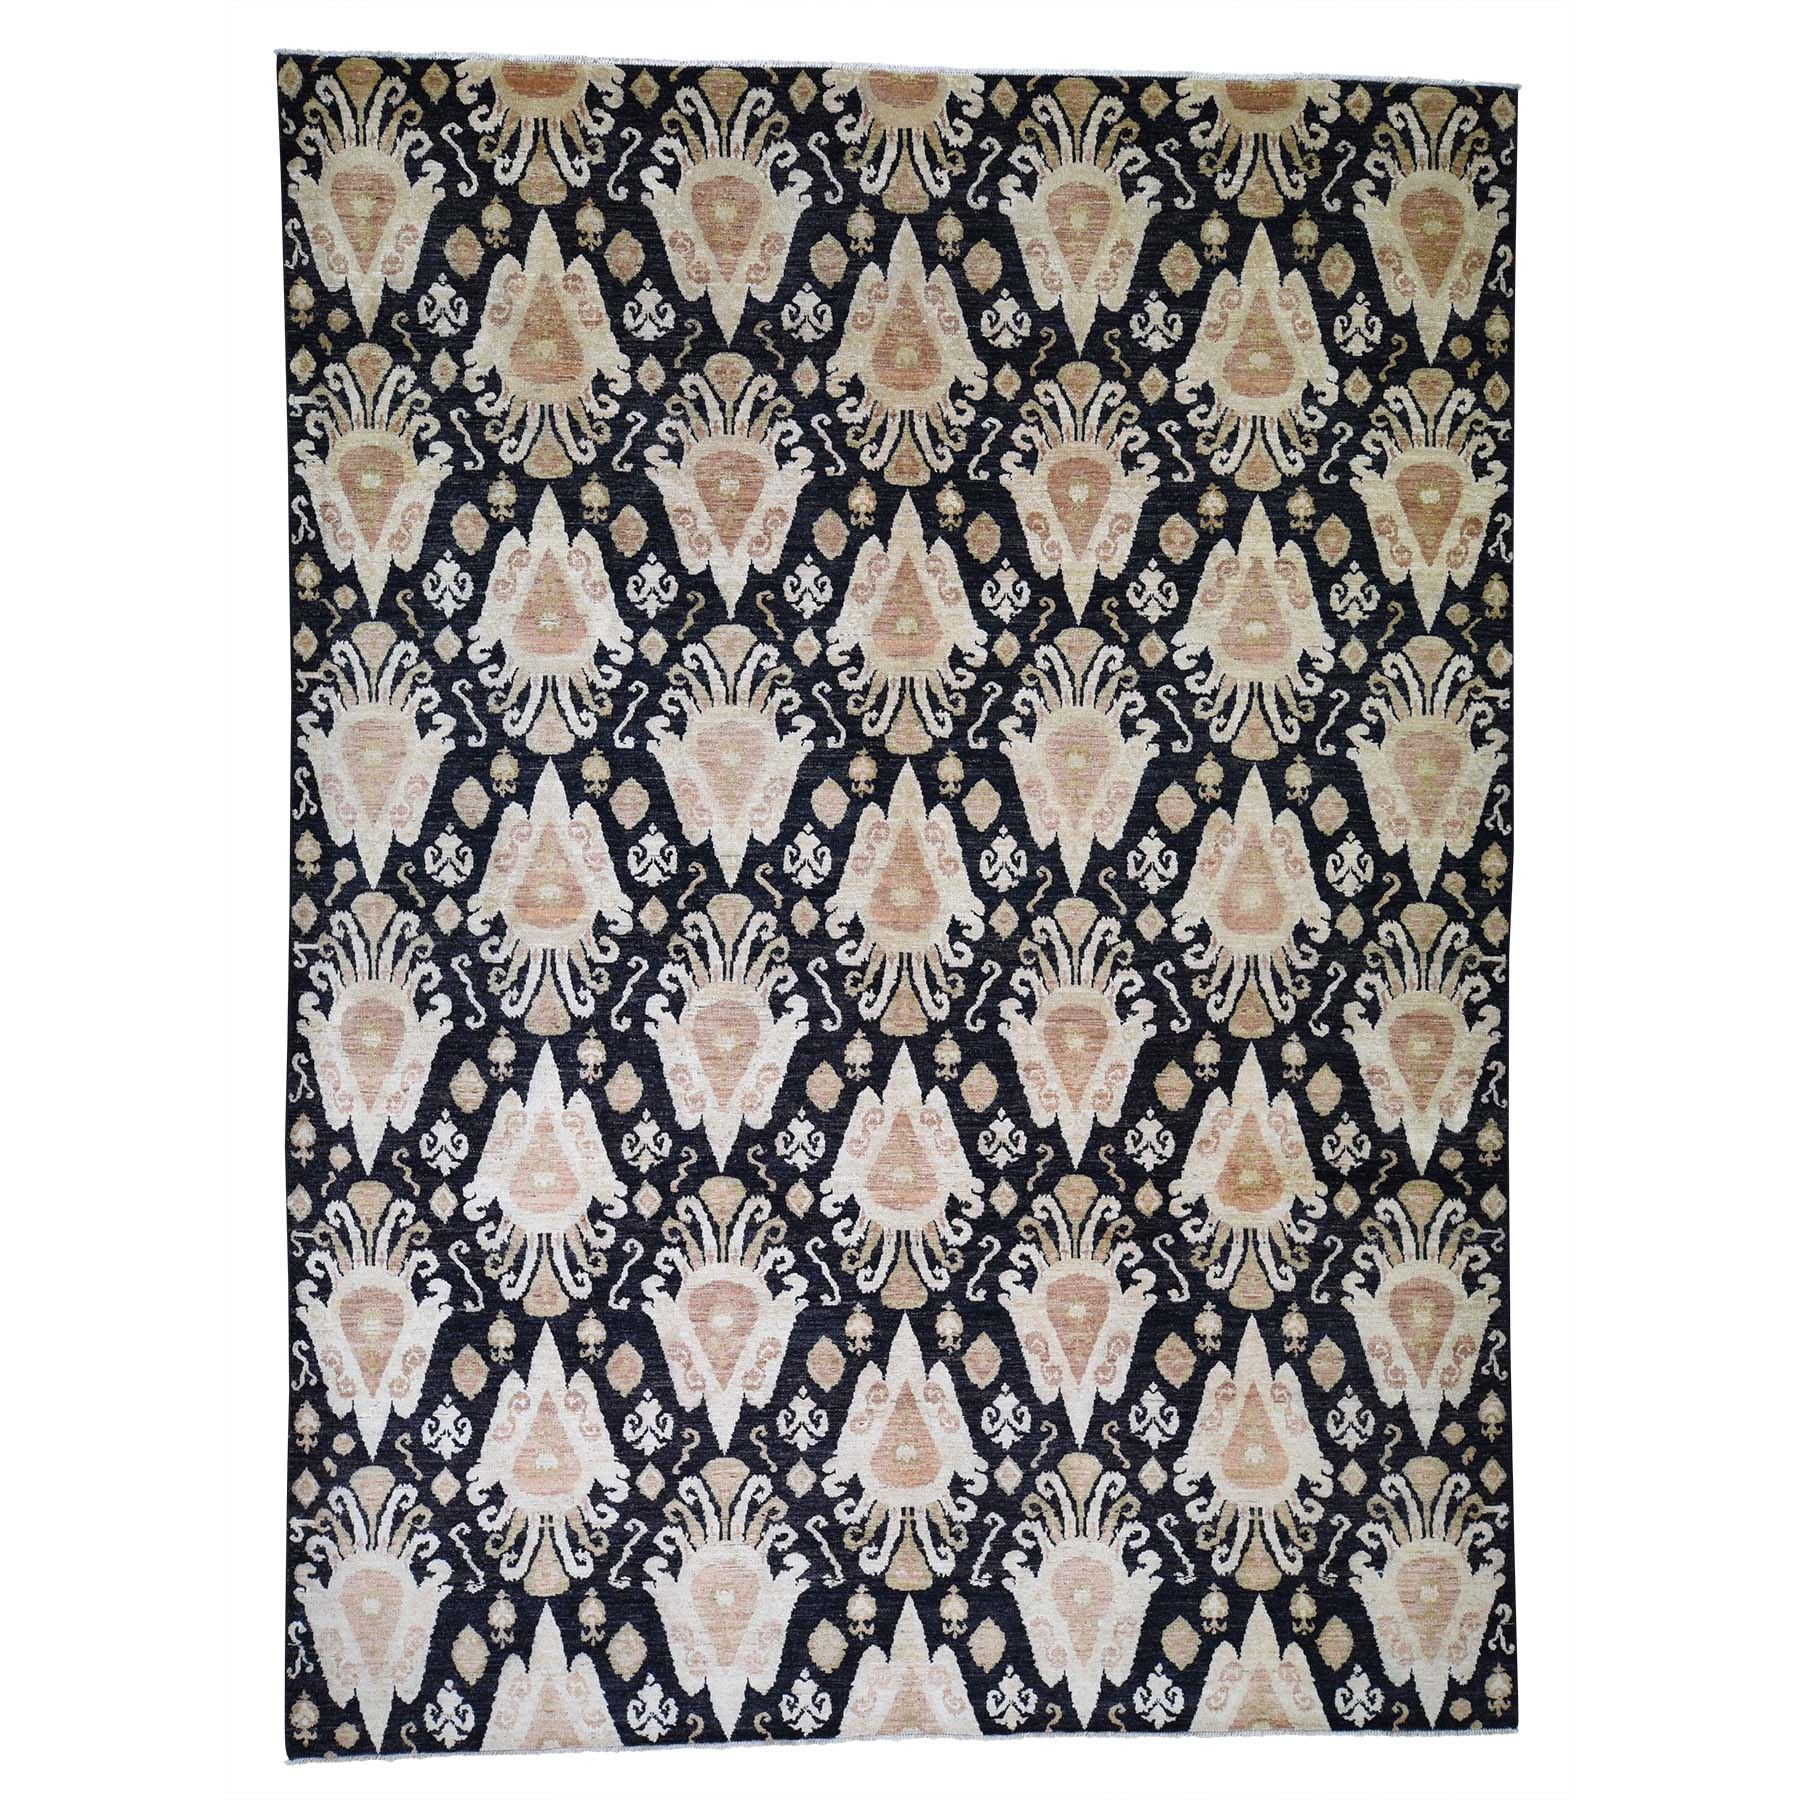 Eclectic and Bohemian Collection Hand Knotted Black Rug No: 189486